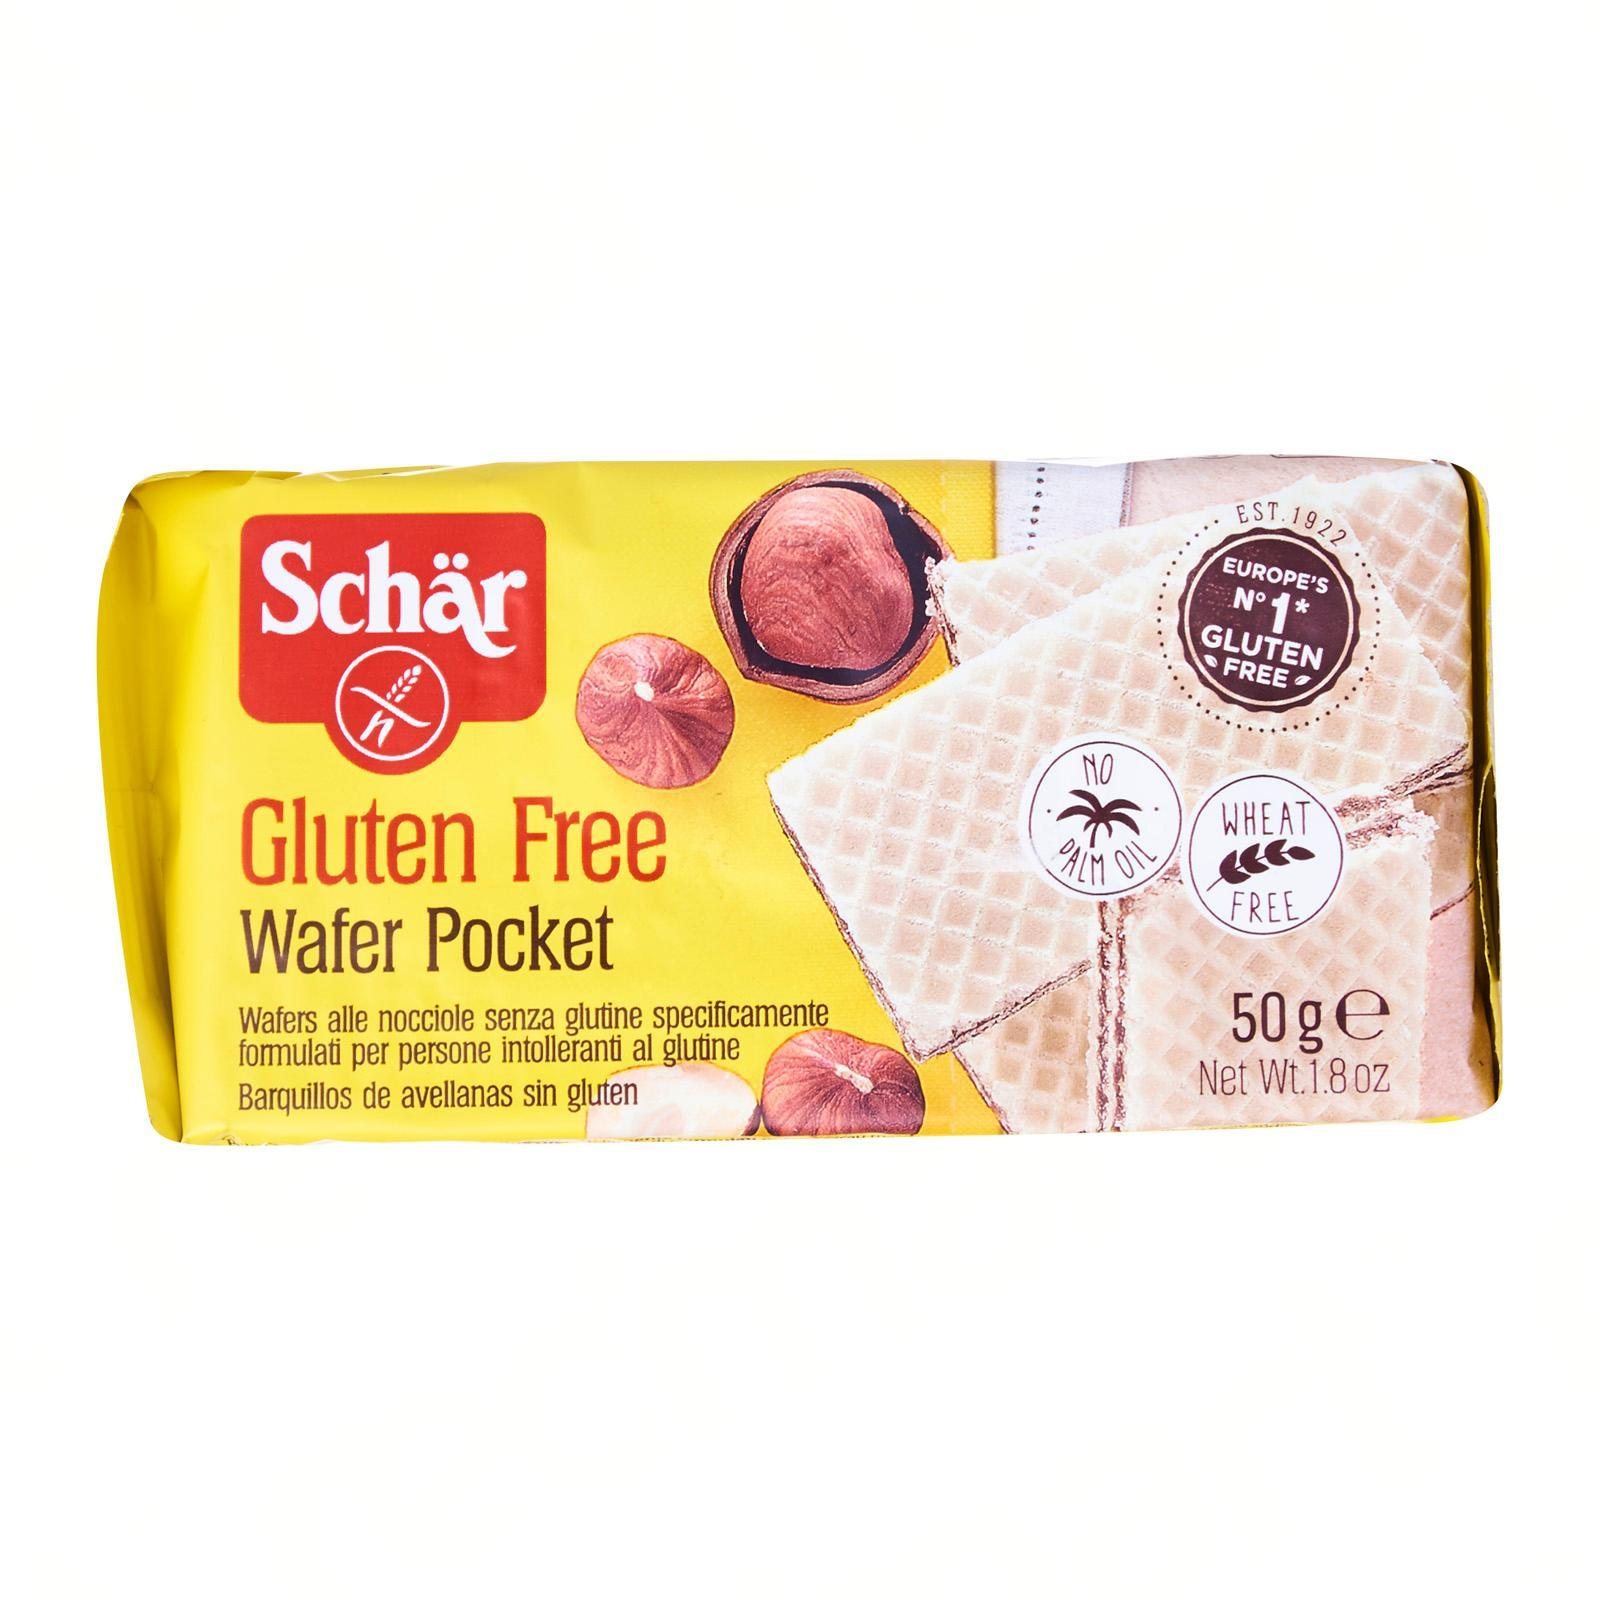 Dr Schar Wafer Pocket with Hazelnut Cream Filling - Gluten Free by Agora Products